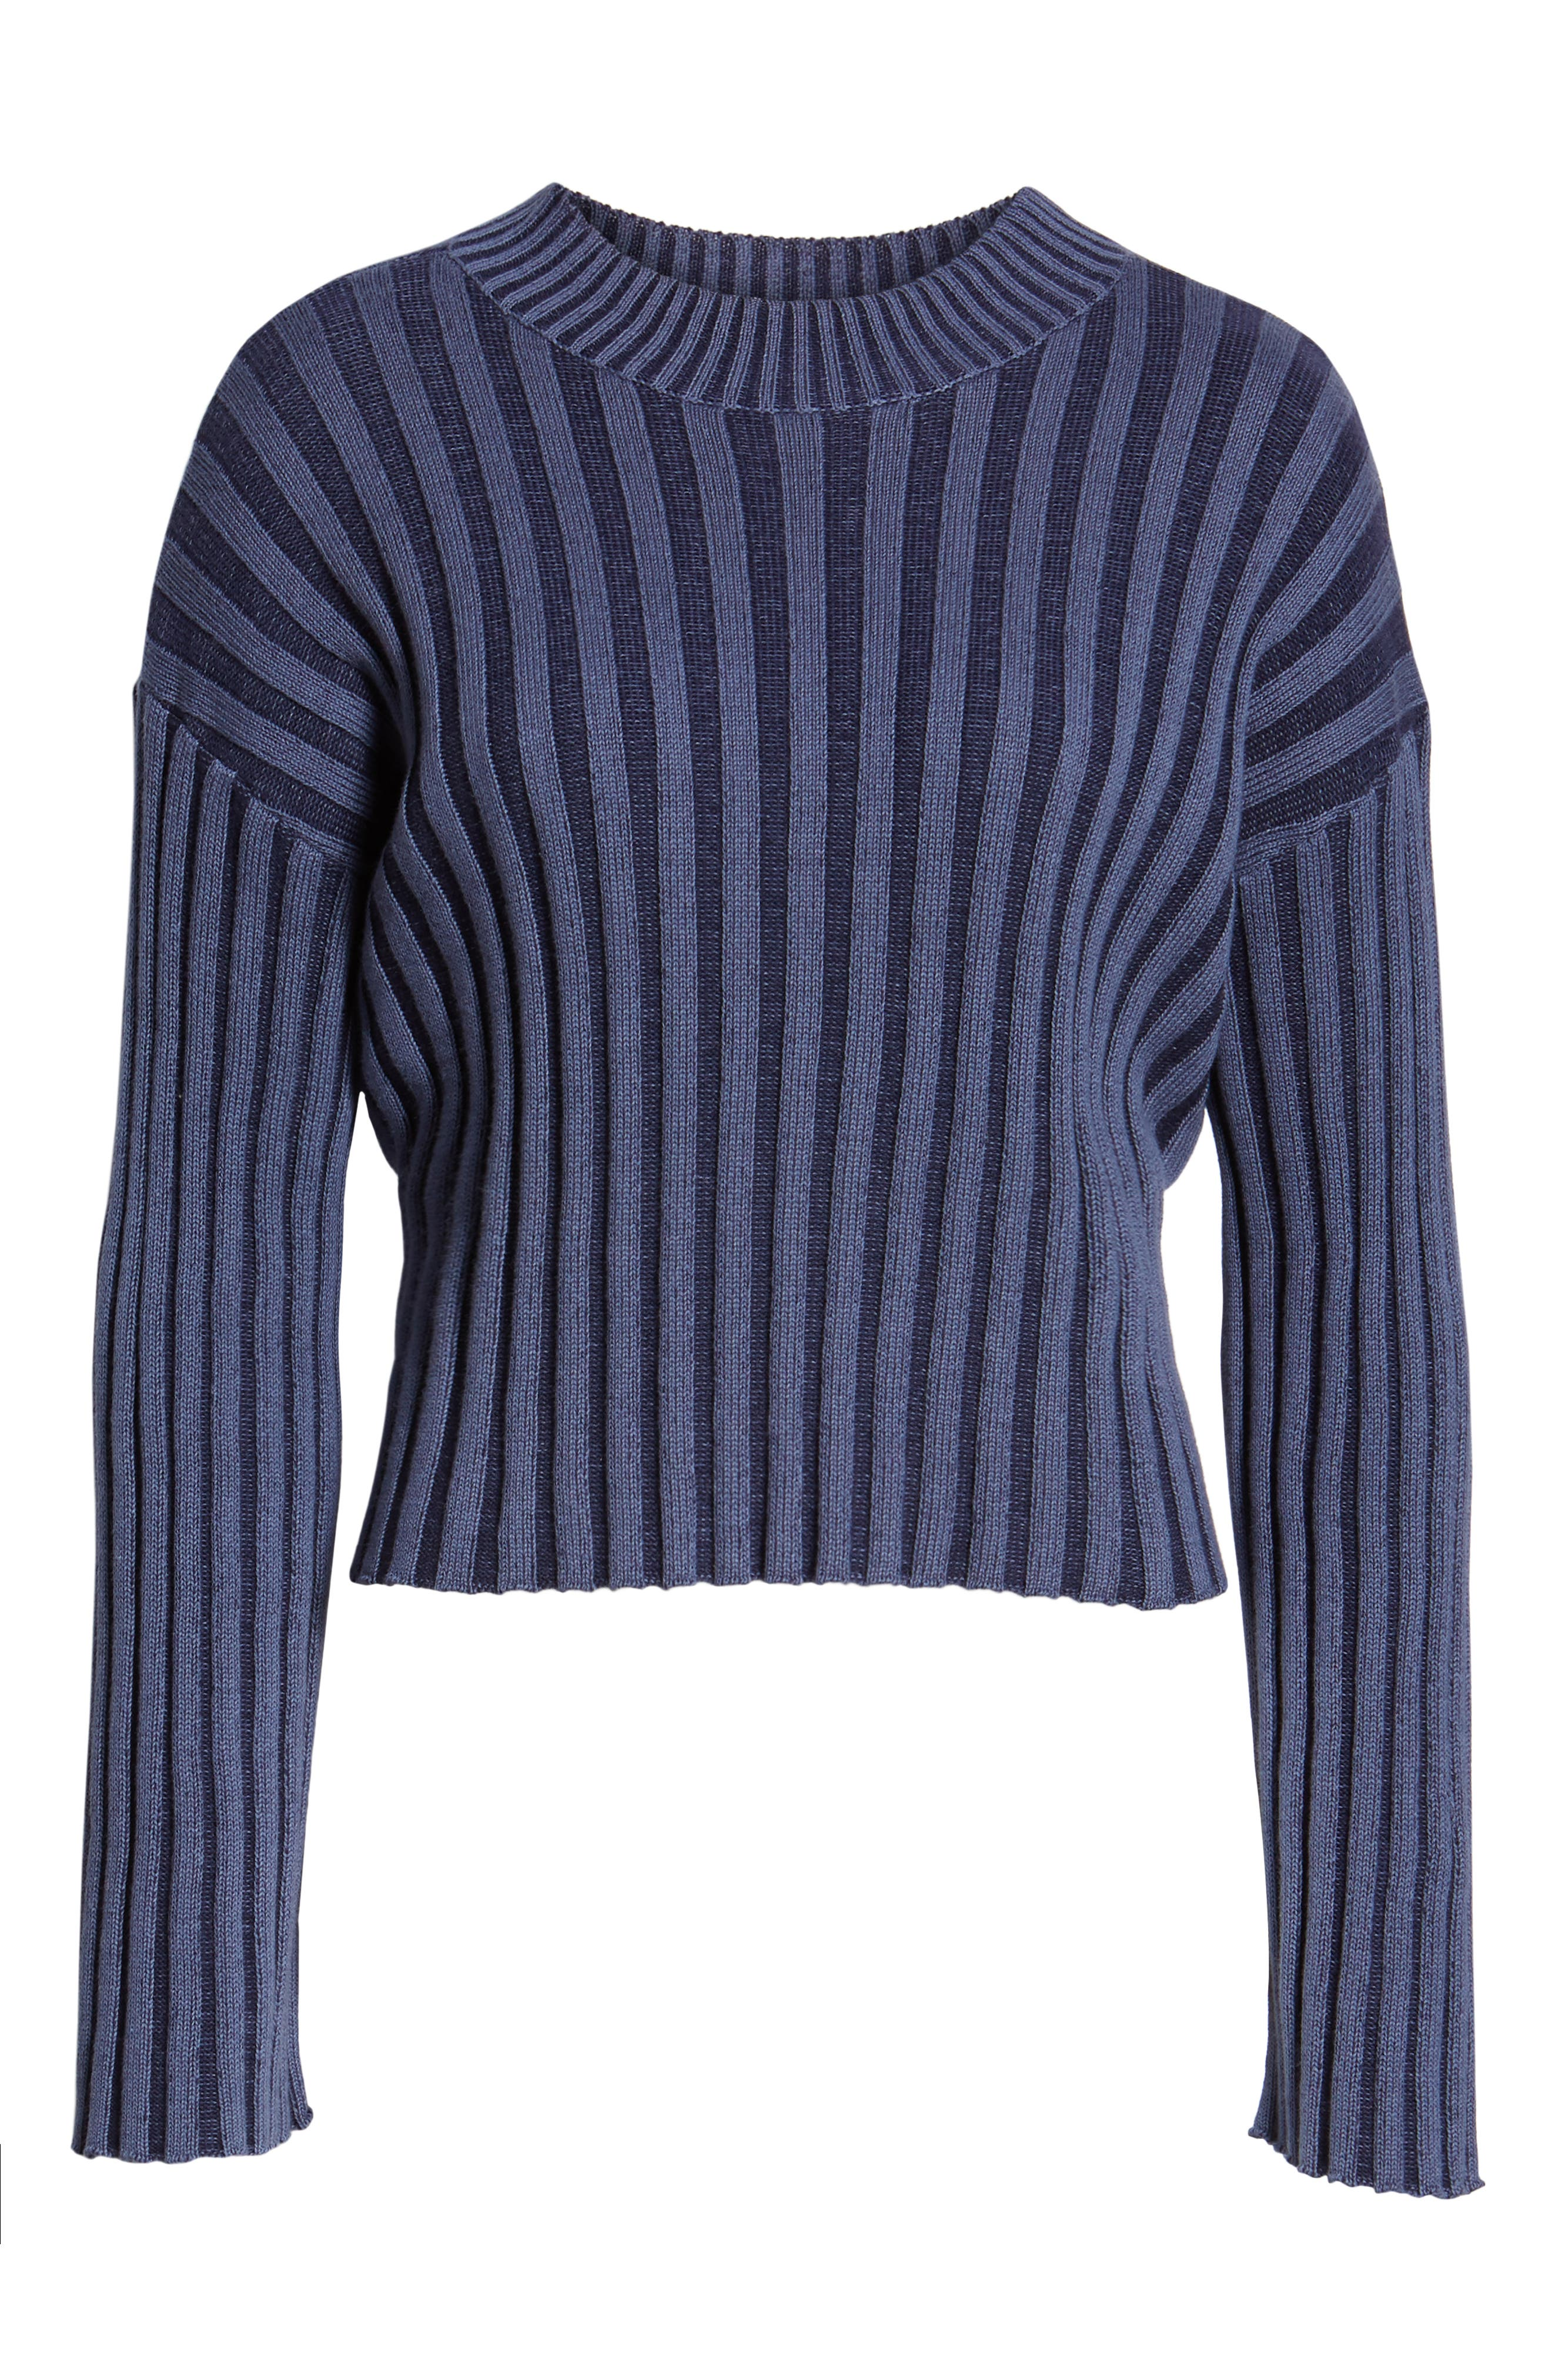 BP., Shadow Rib Crop Sweater, Alternate thumbnail 7, color, NAVY EVENING